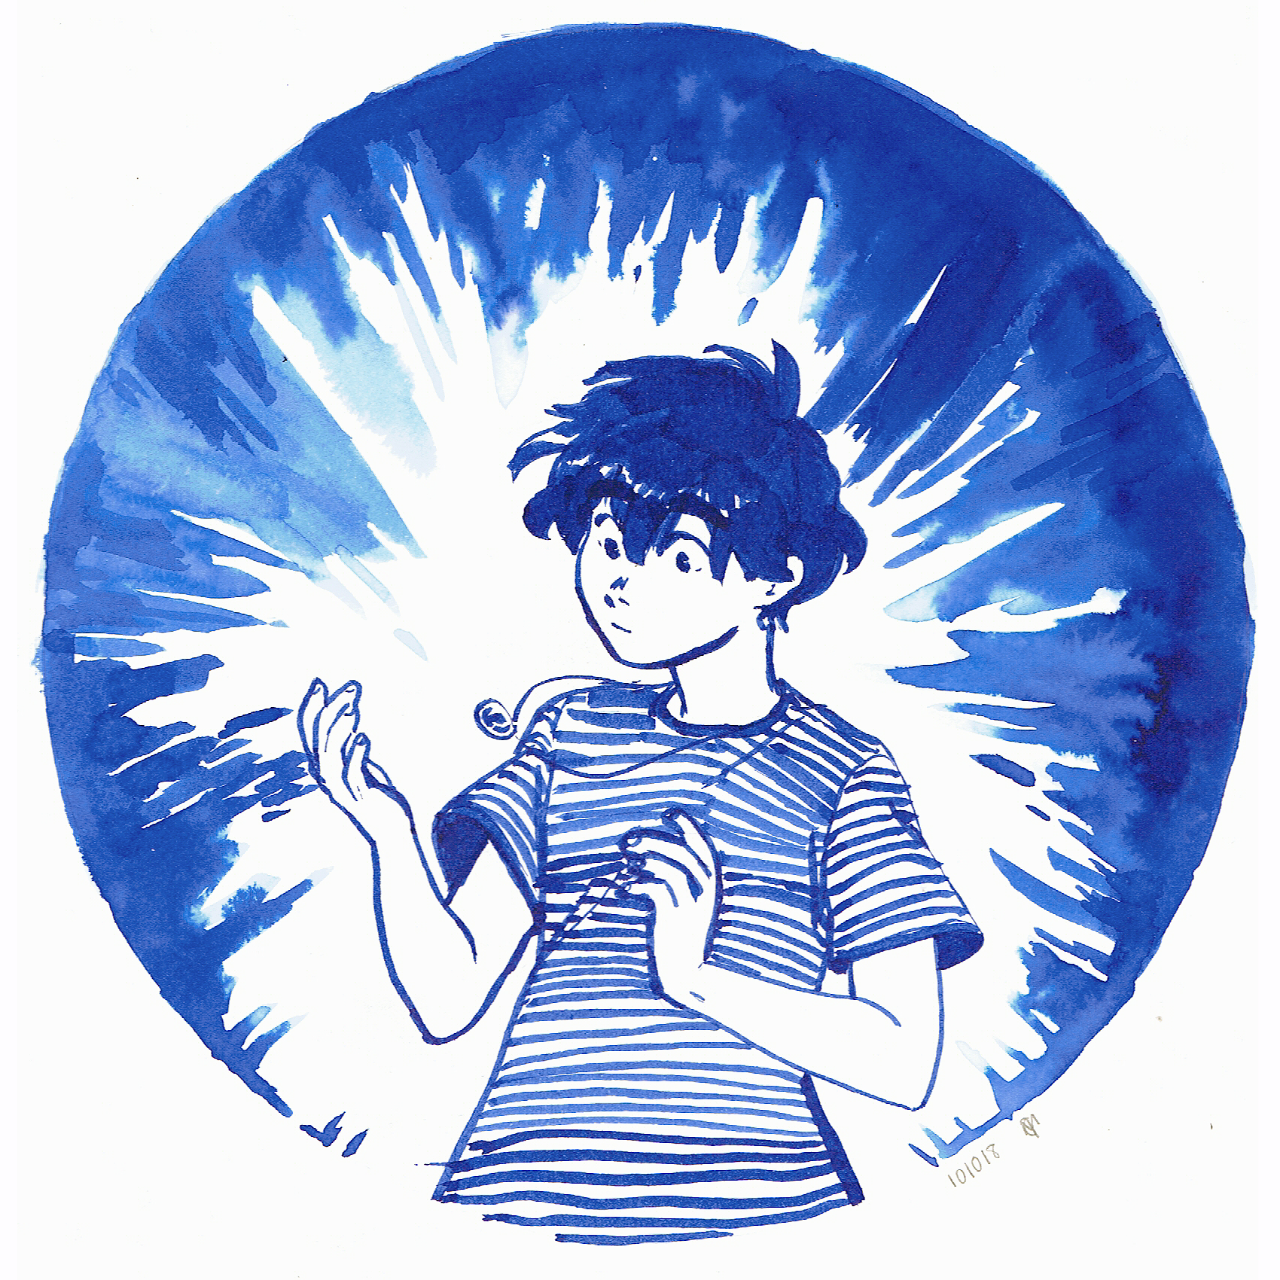 Ink drawing of a boy standing with a floating necklace that's shining brightly